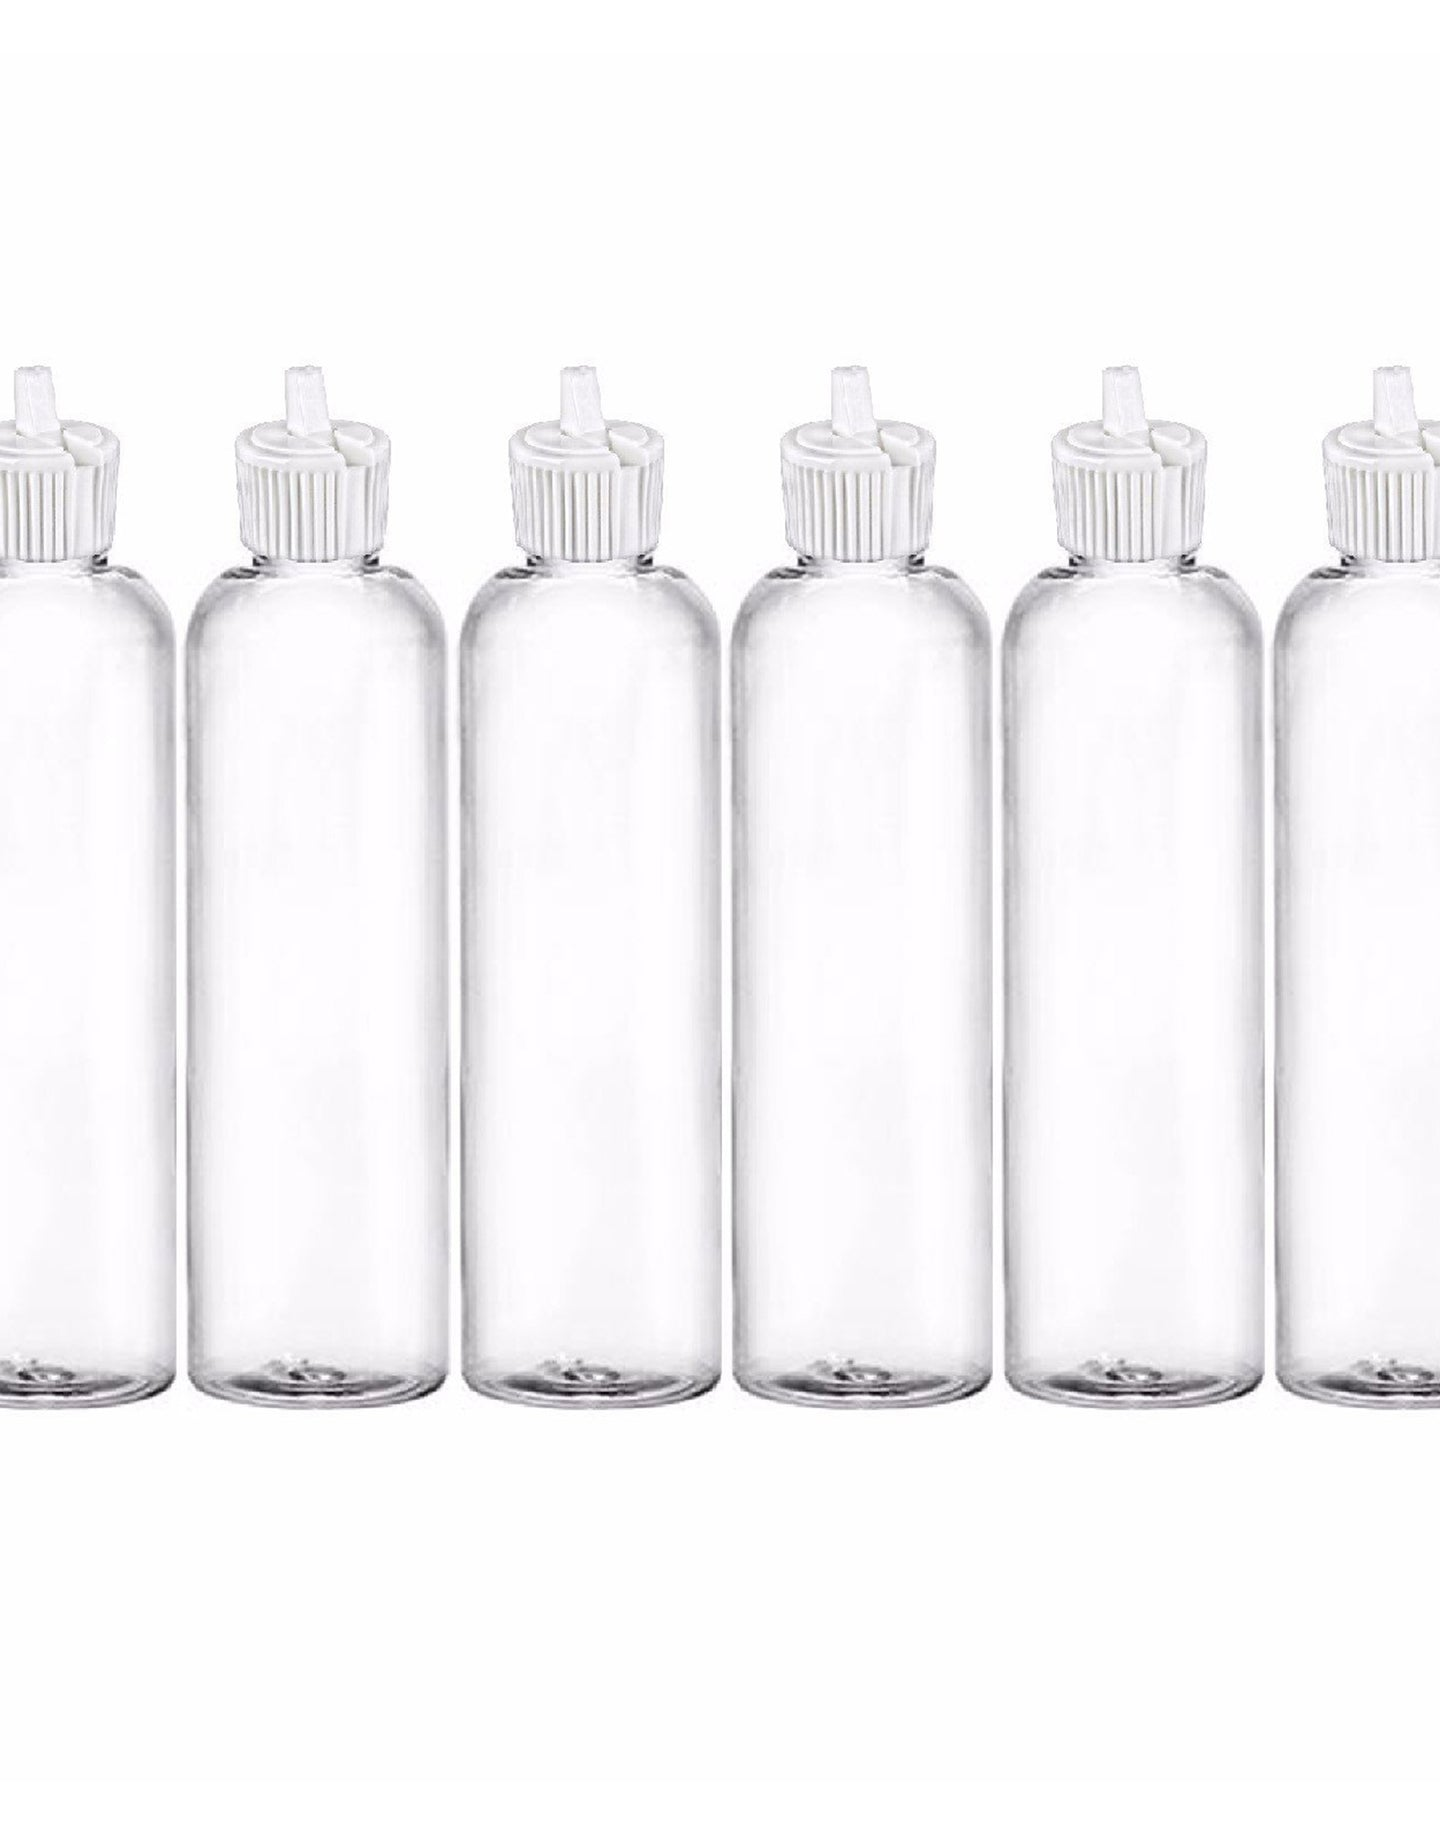 MoYo Natural Labs Turret Spout 8 oz Empty Liquid Bottle with Adjustable Dispenser (Pack of 6, Clear)